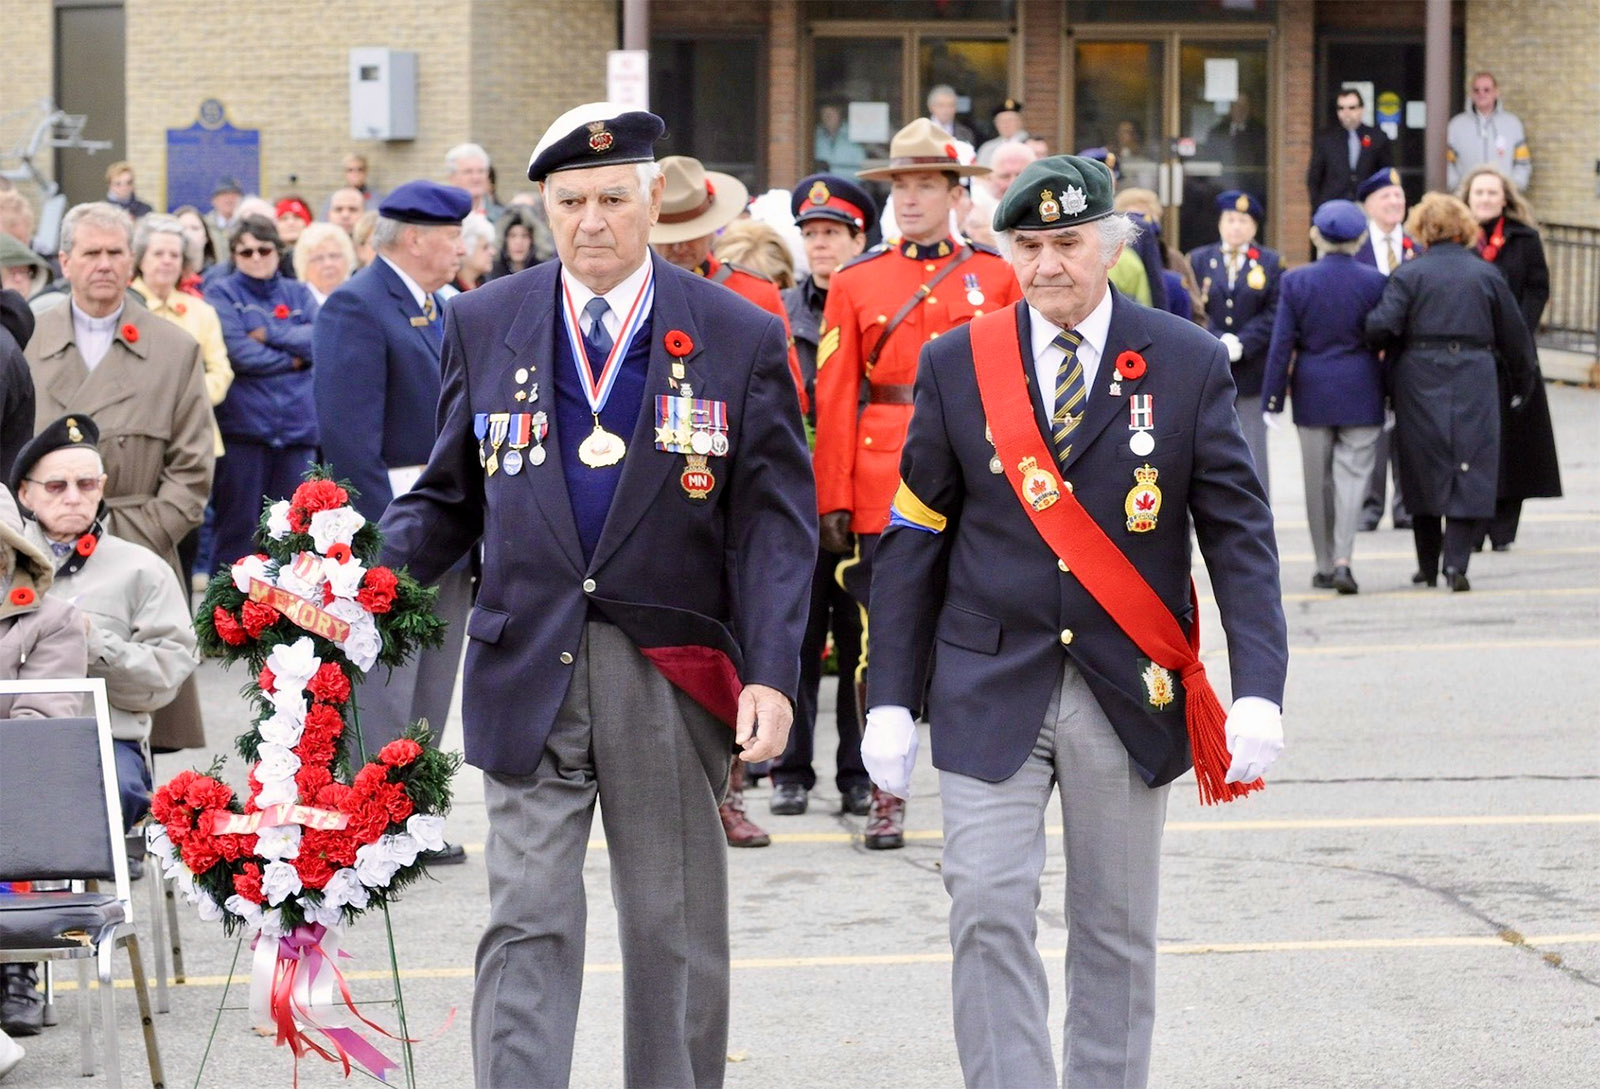 Mr. Wetherall (left) lays a wreath at a modern-era Remembrance Day ceremony.